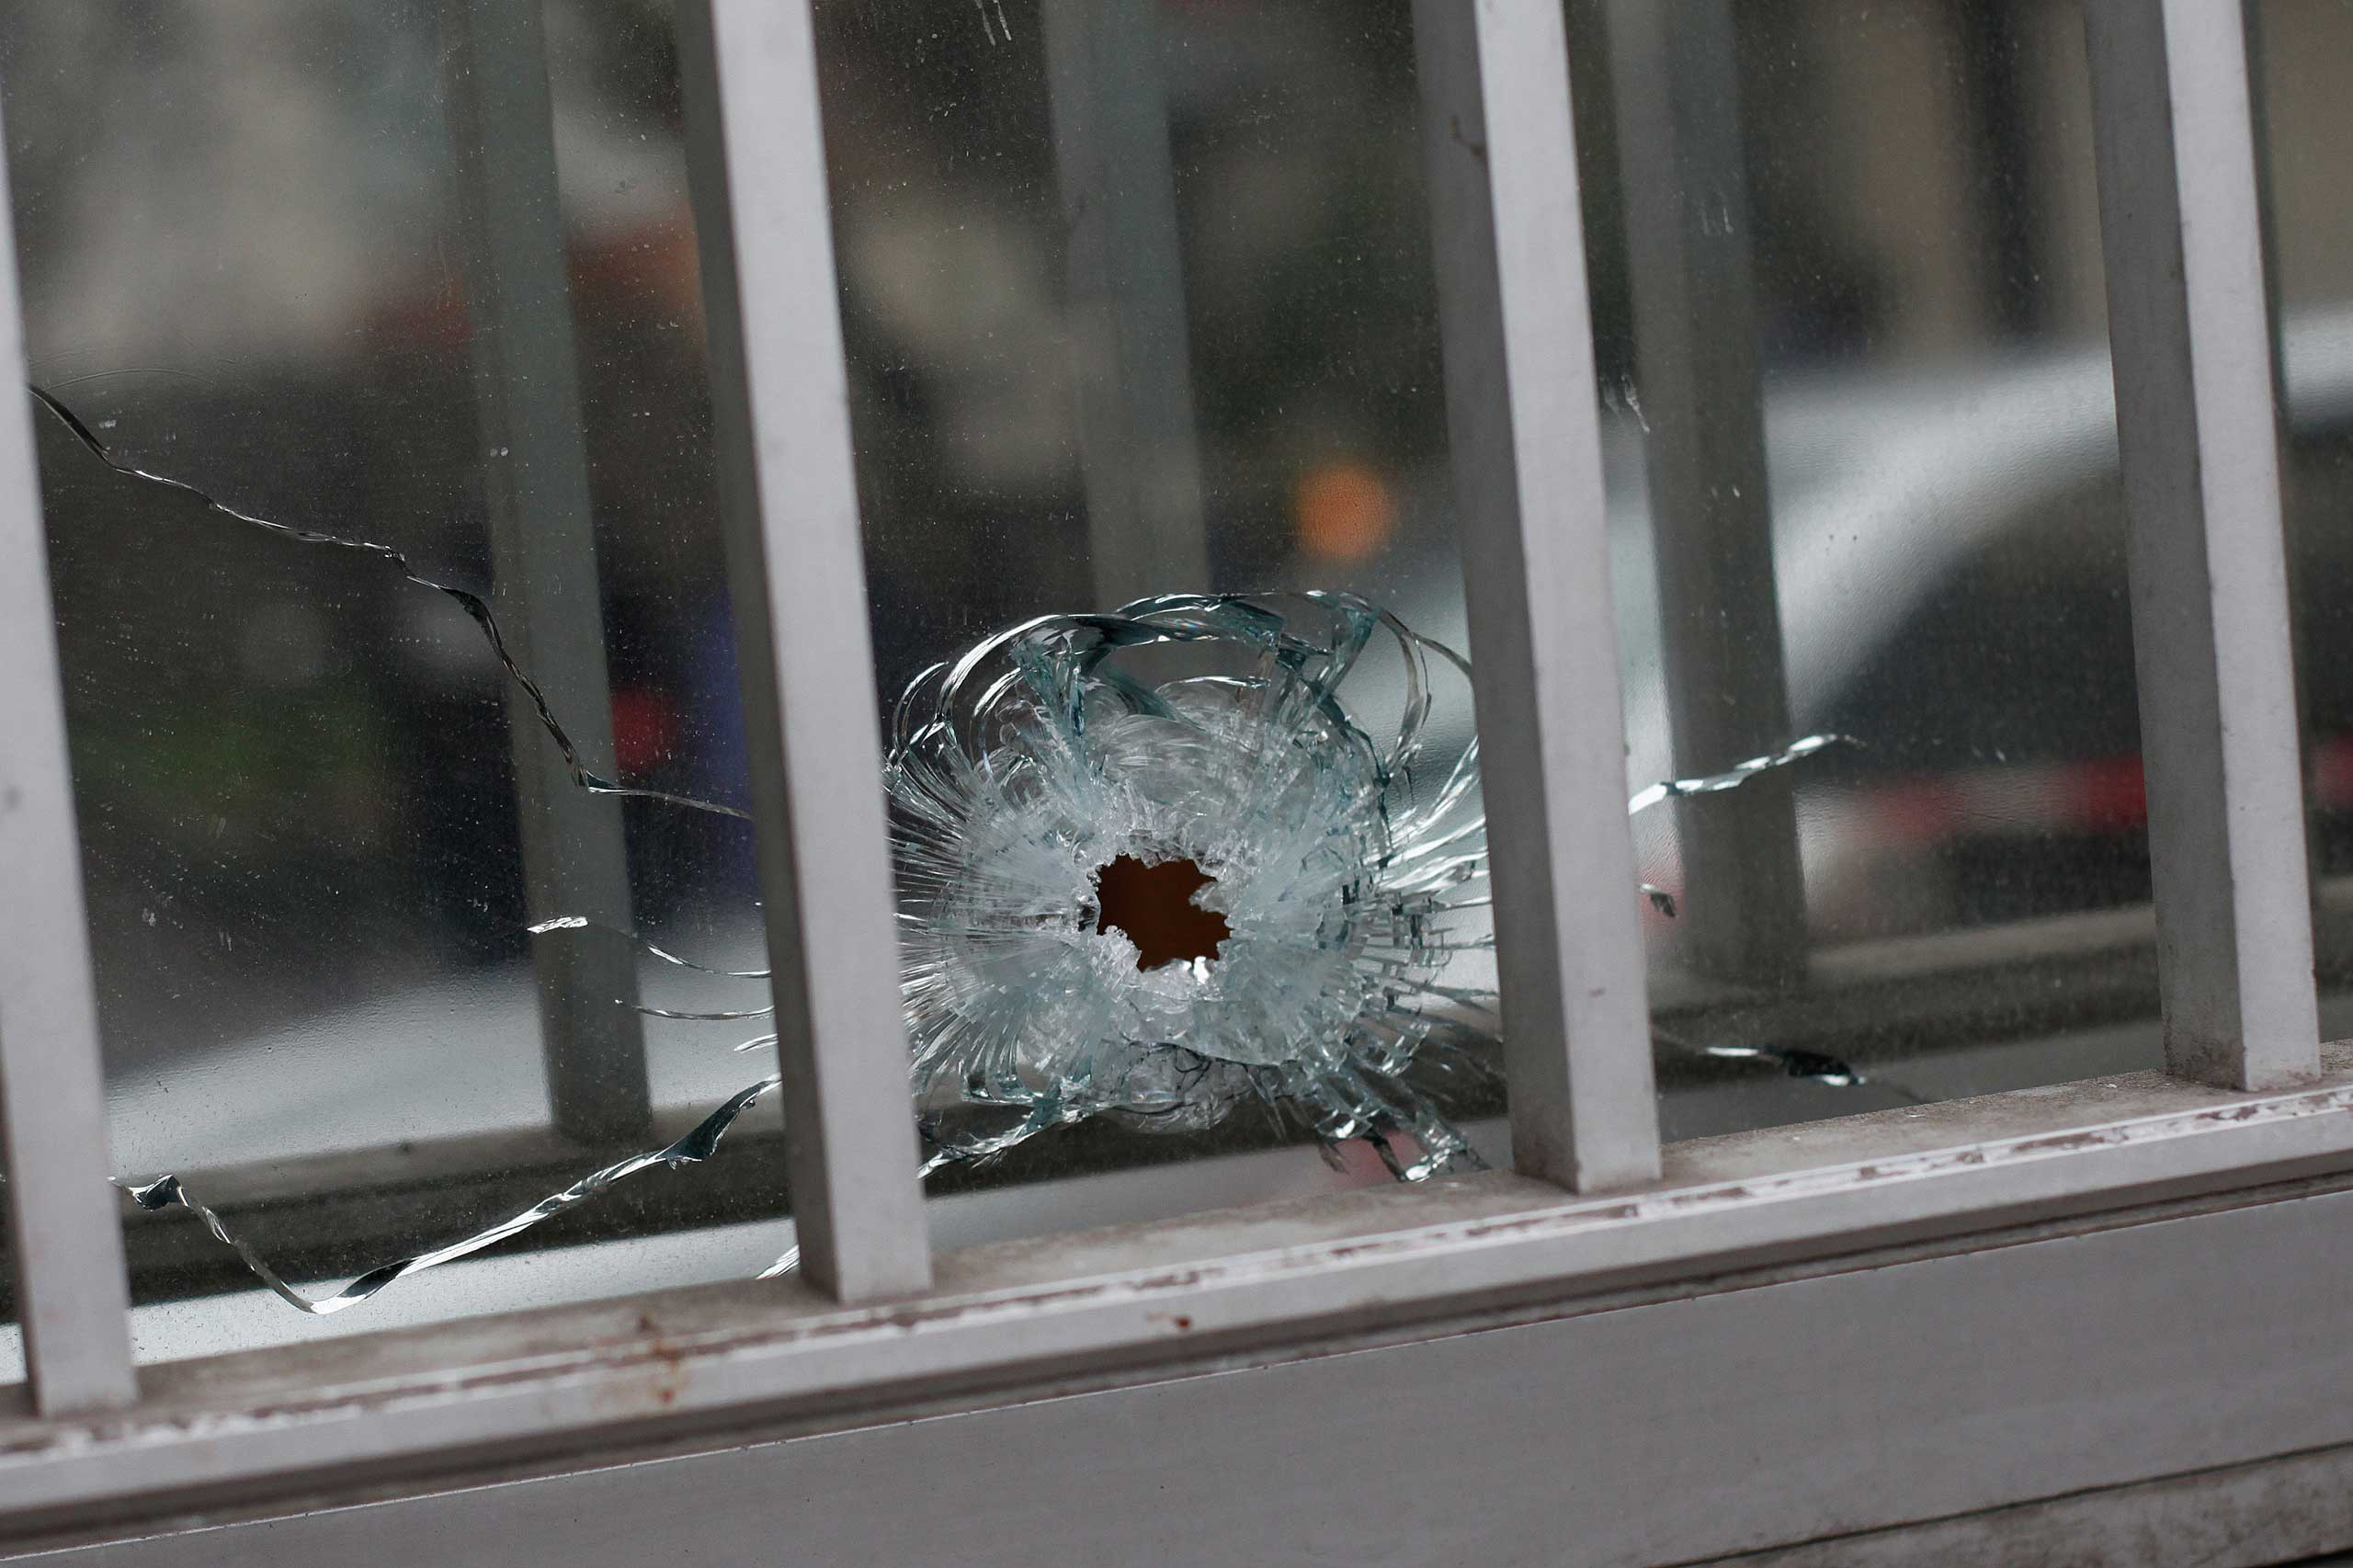 A bullet impact is seen in a window of a building next to the French satirical newspaper Charlie Hebdo's office, in Paris, Jan. 7, 2015.